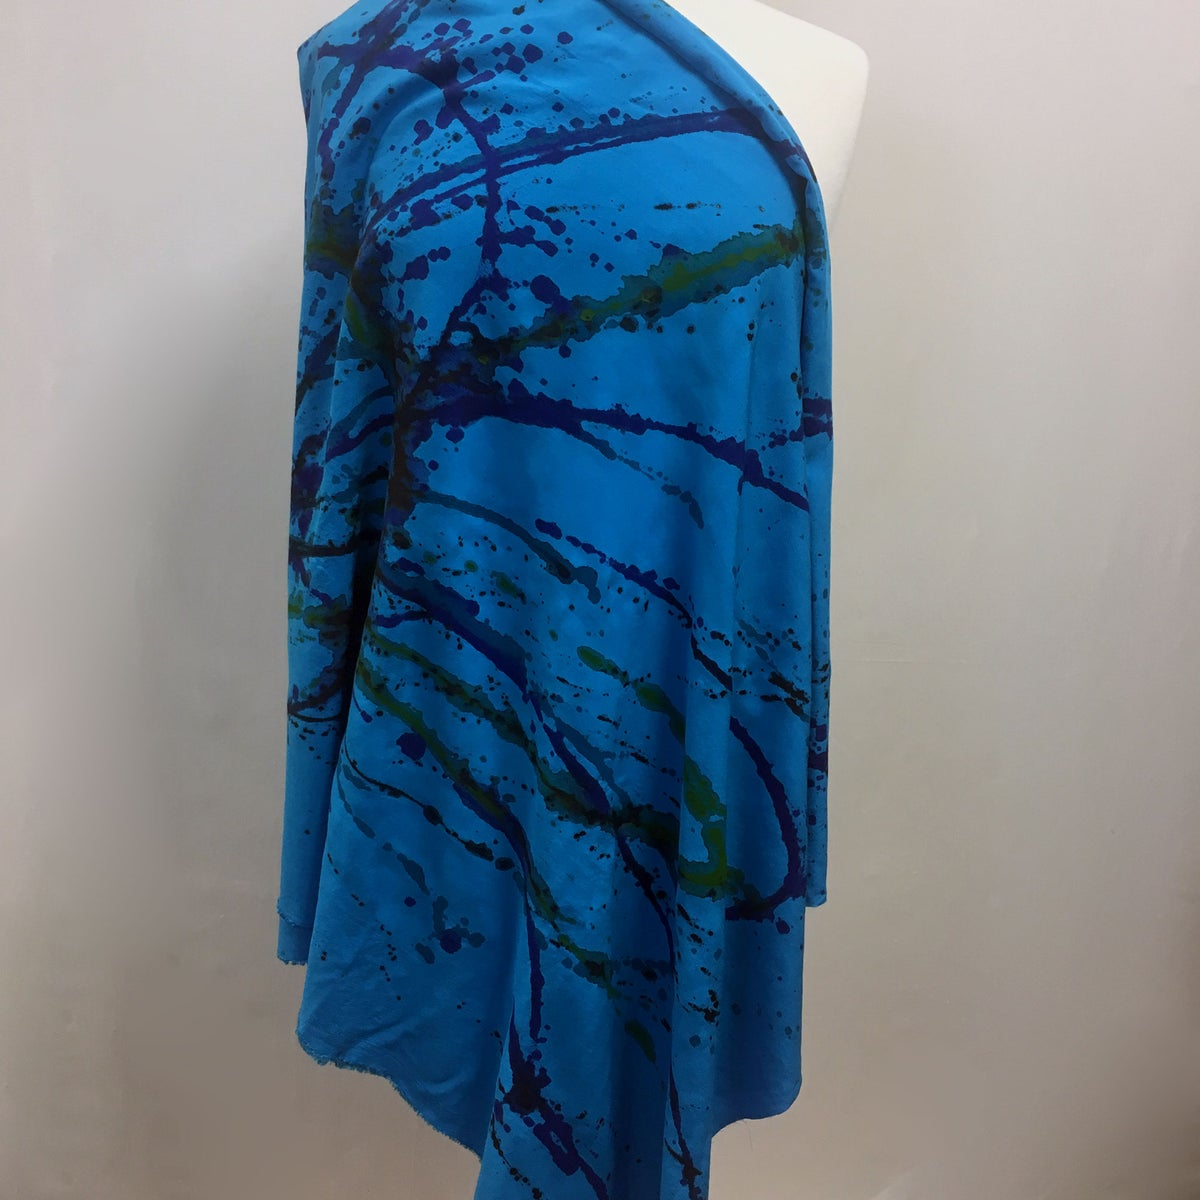 Image of Sustainable Rayon Fabric - Hand-Painted with Non-toxic Paints